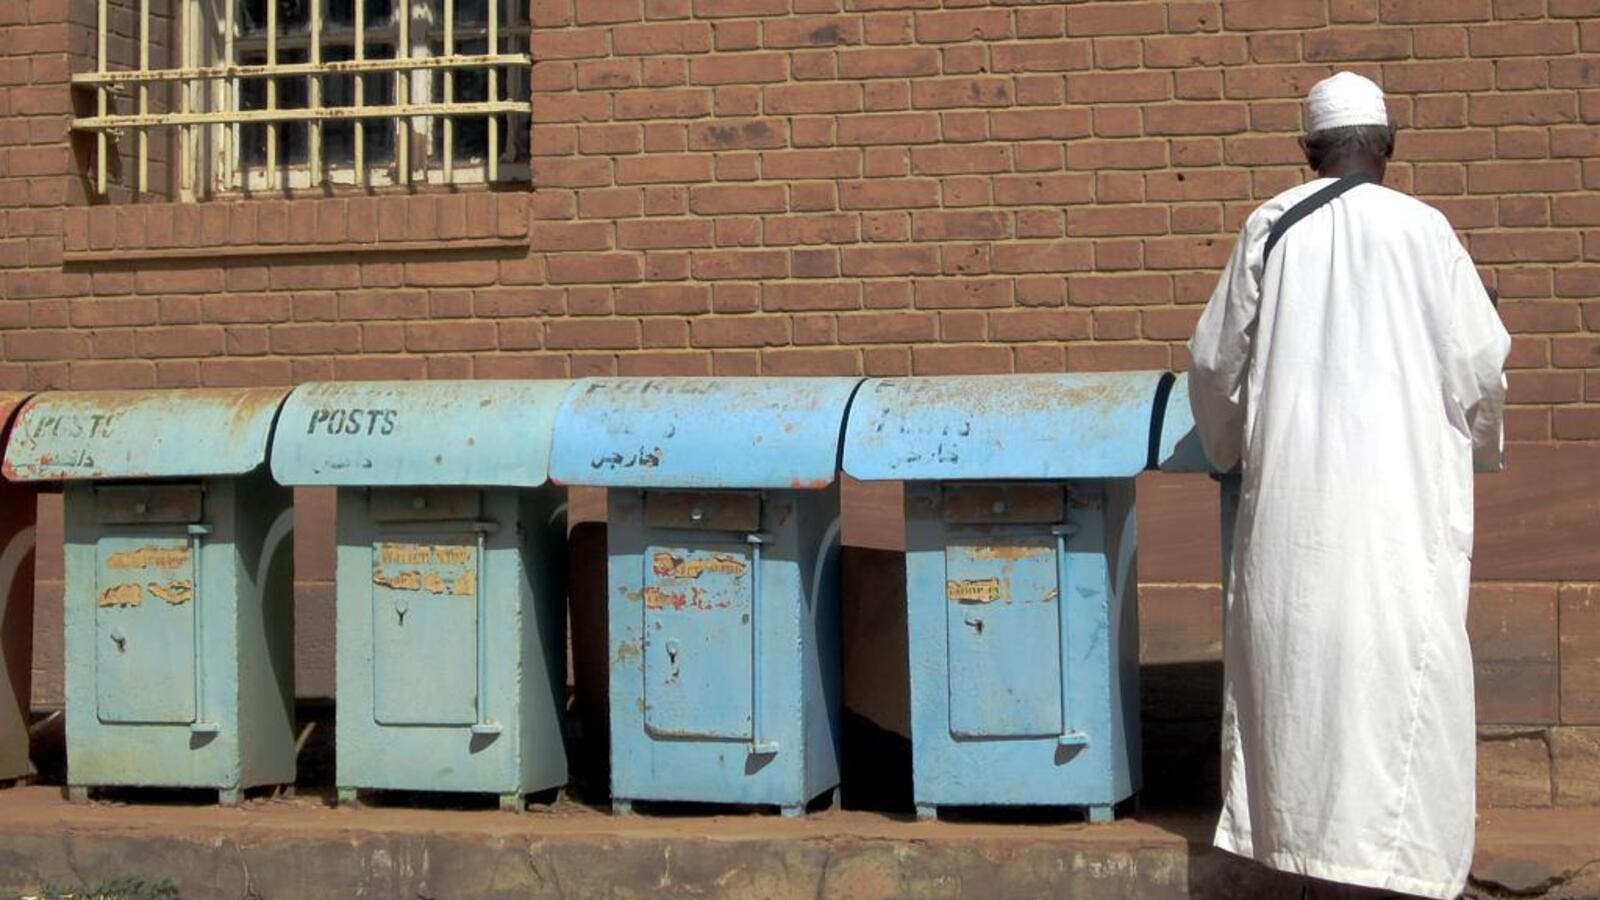 A man sends a letter at a post office in Khartoum, Sudan.  (Flickr Creative Commons/David Stanley)